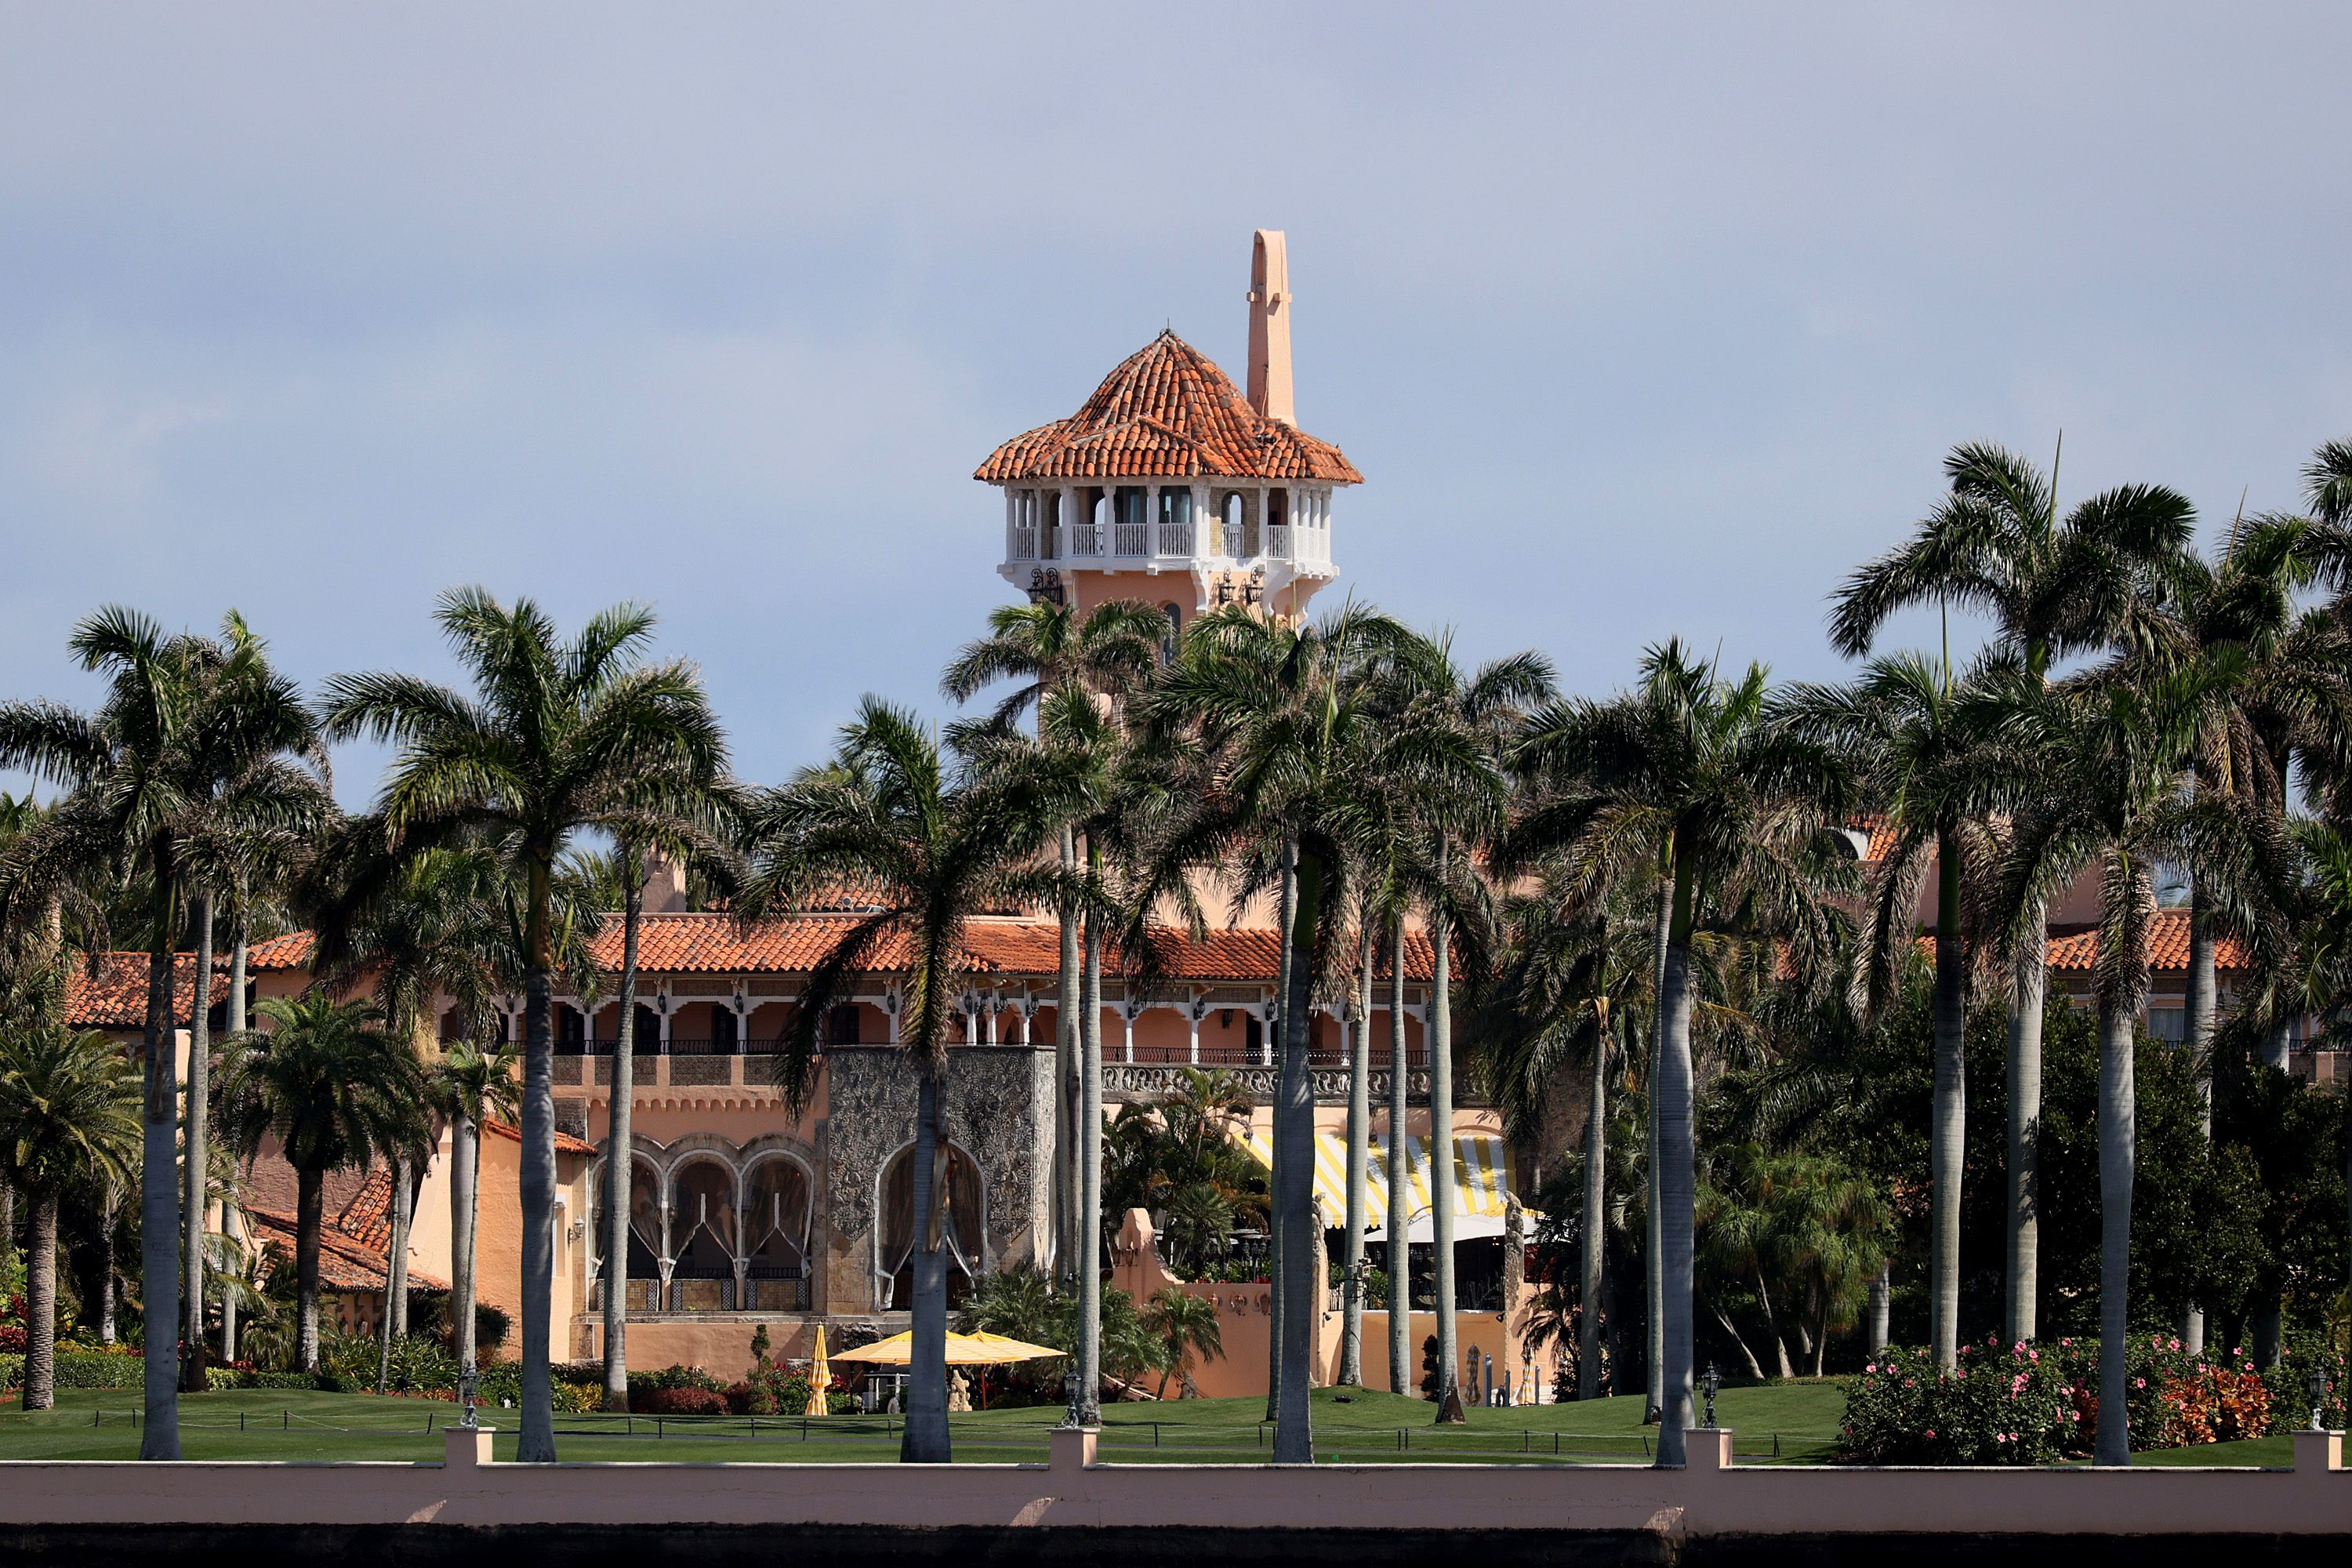 Former President Donald Trump's Mar-a-Lago resort has raked in money for the Trump family by directing events to the site.